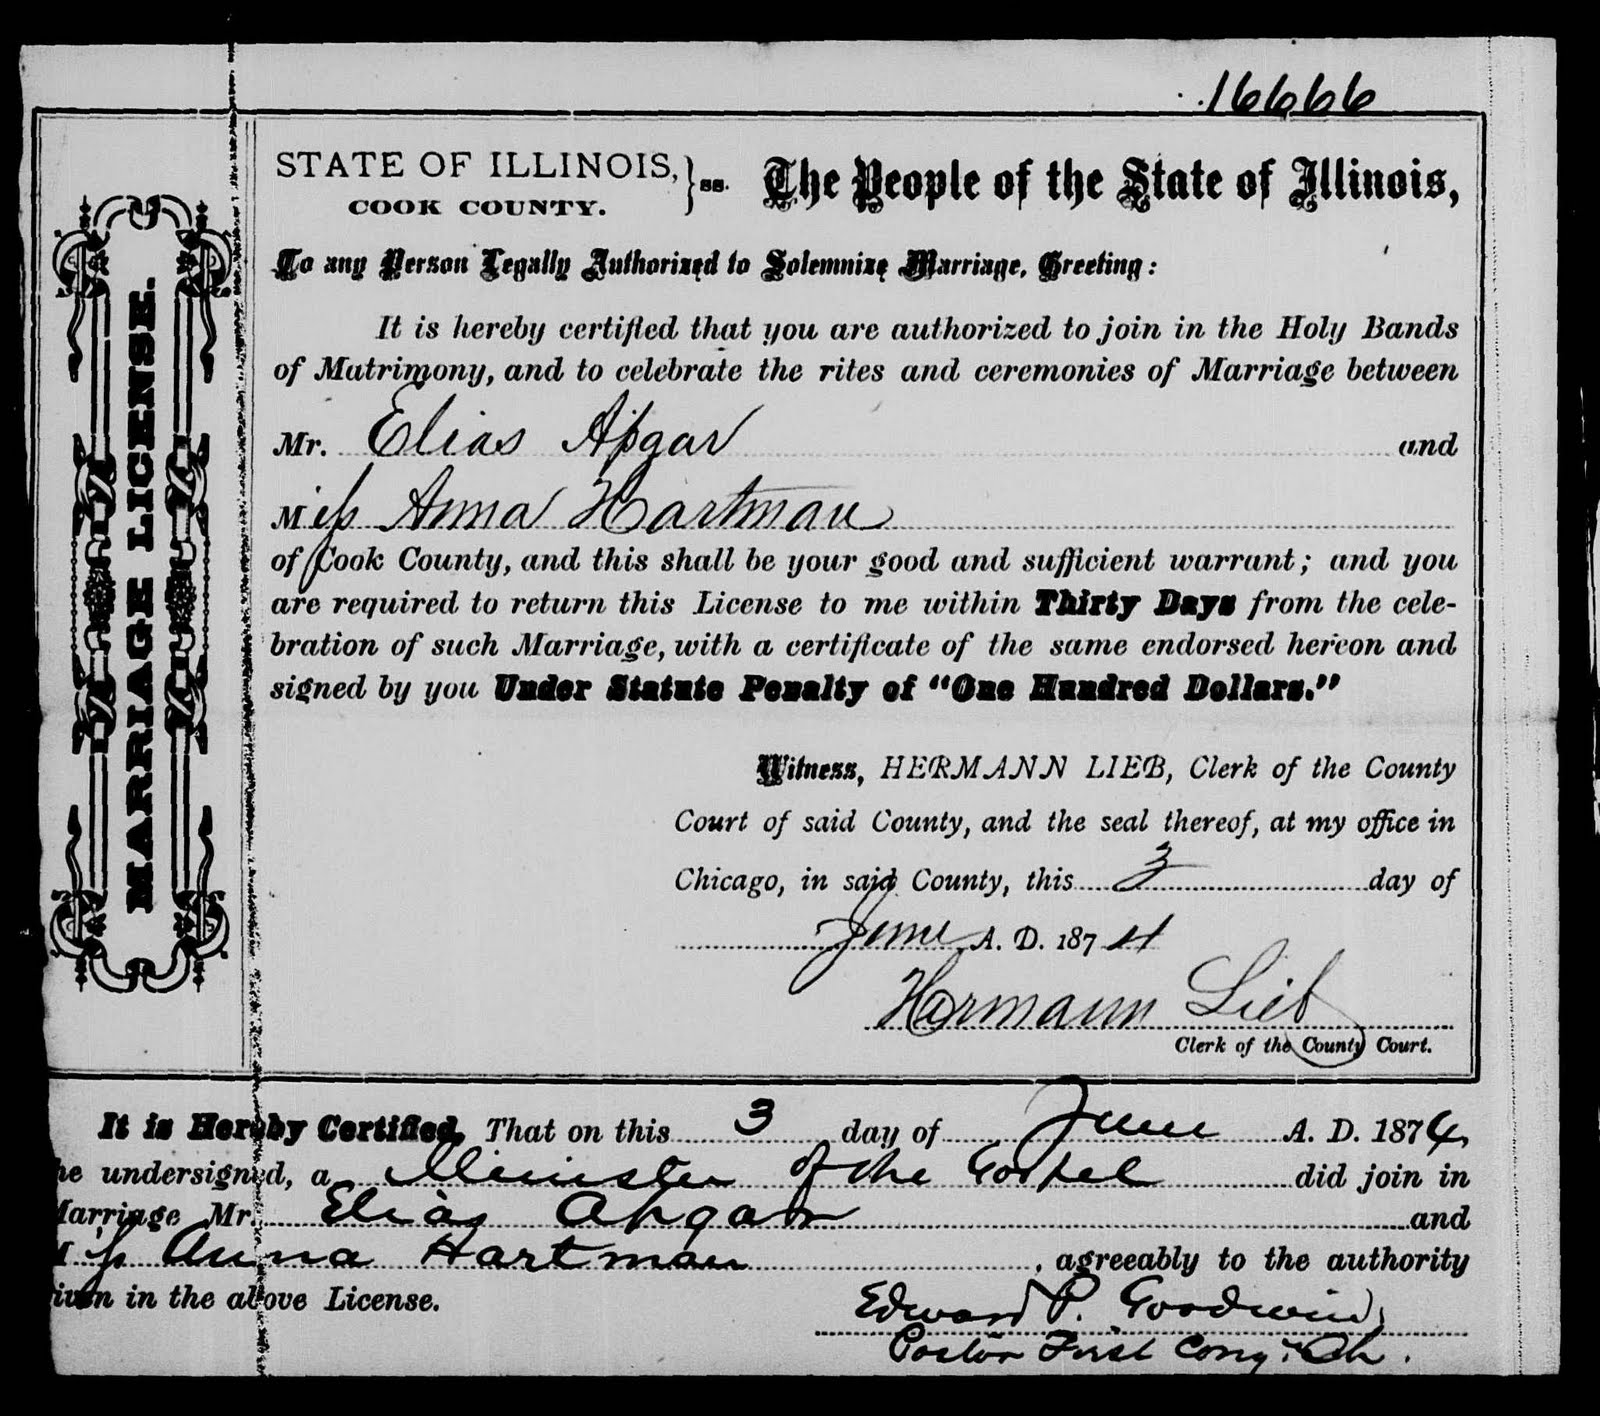 Free Professional Resume Cook County Clerk Birth Certificate